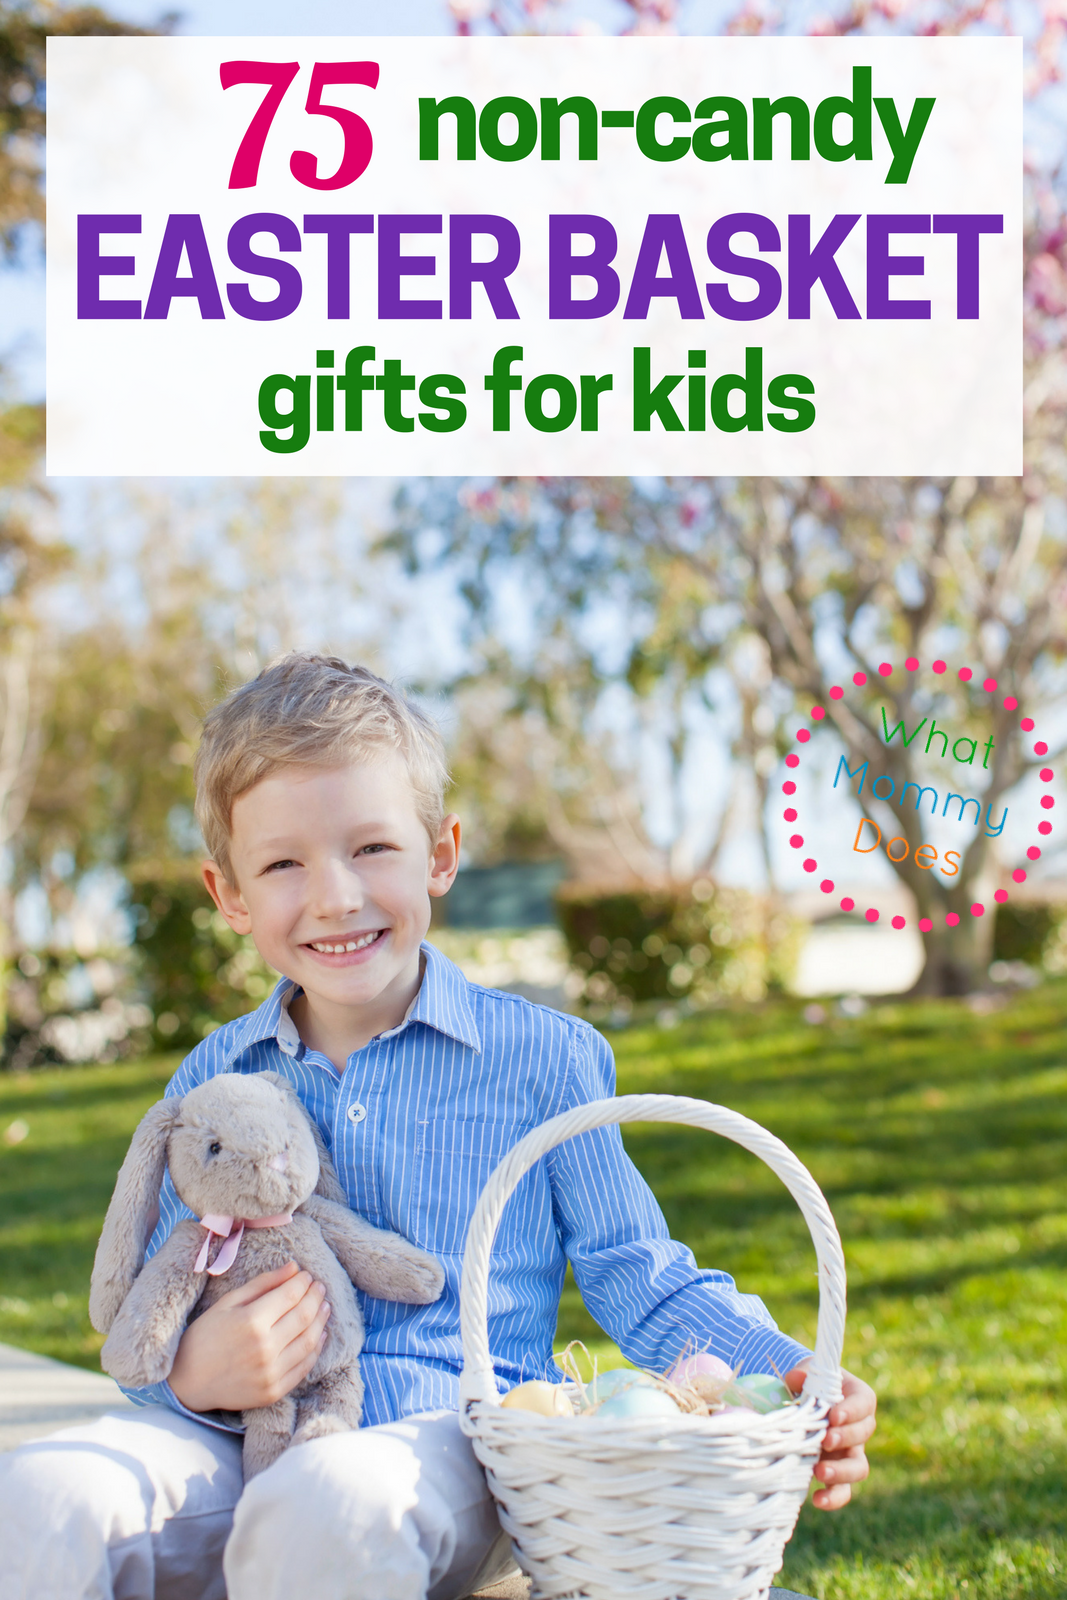 75 Non-Candy Easter Basket Gift Ideas for Kids - If you're looking for Easter basket gift ideas for kids that aren't CANDY, these fillers fit the bill. Some are educational, some are just plain fun, none are edible! LOL